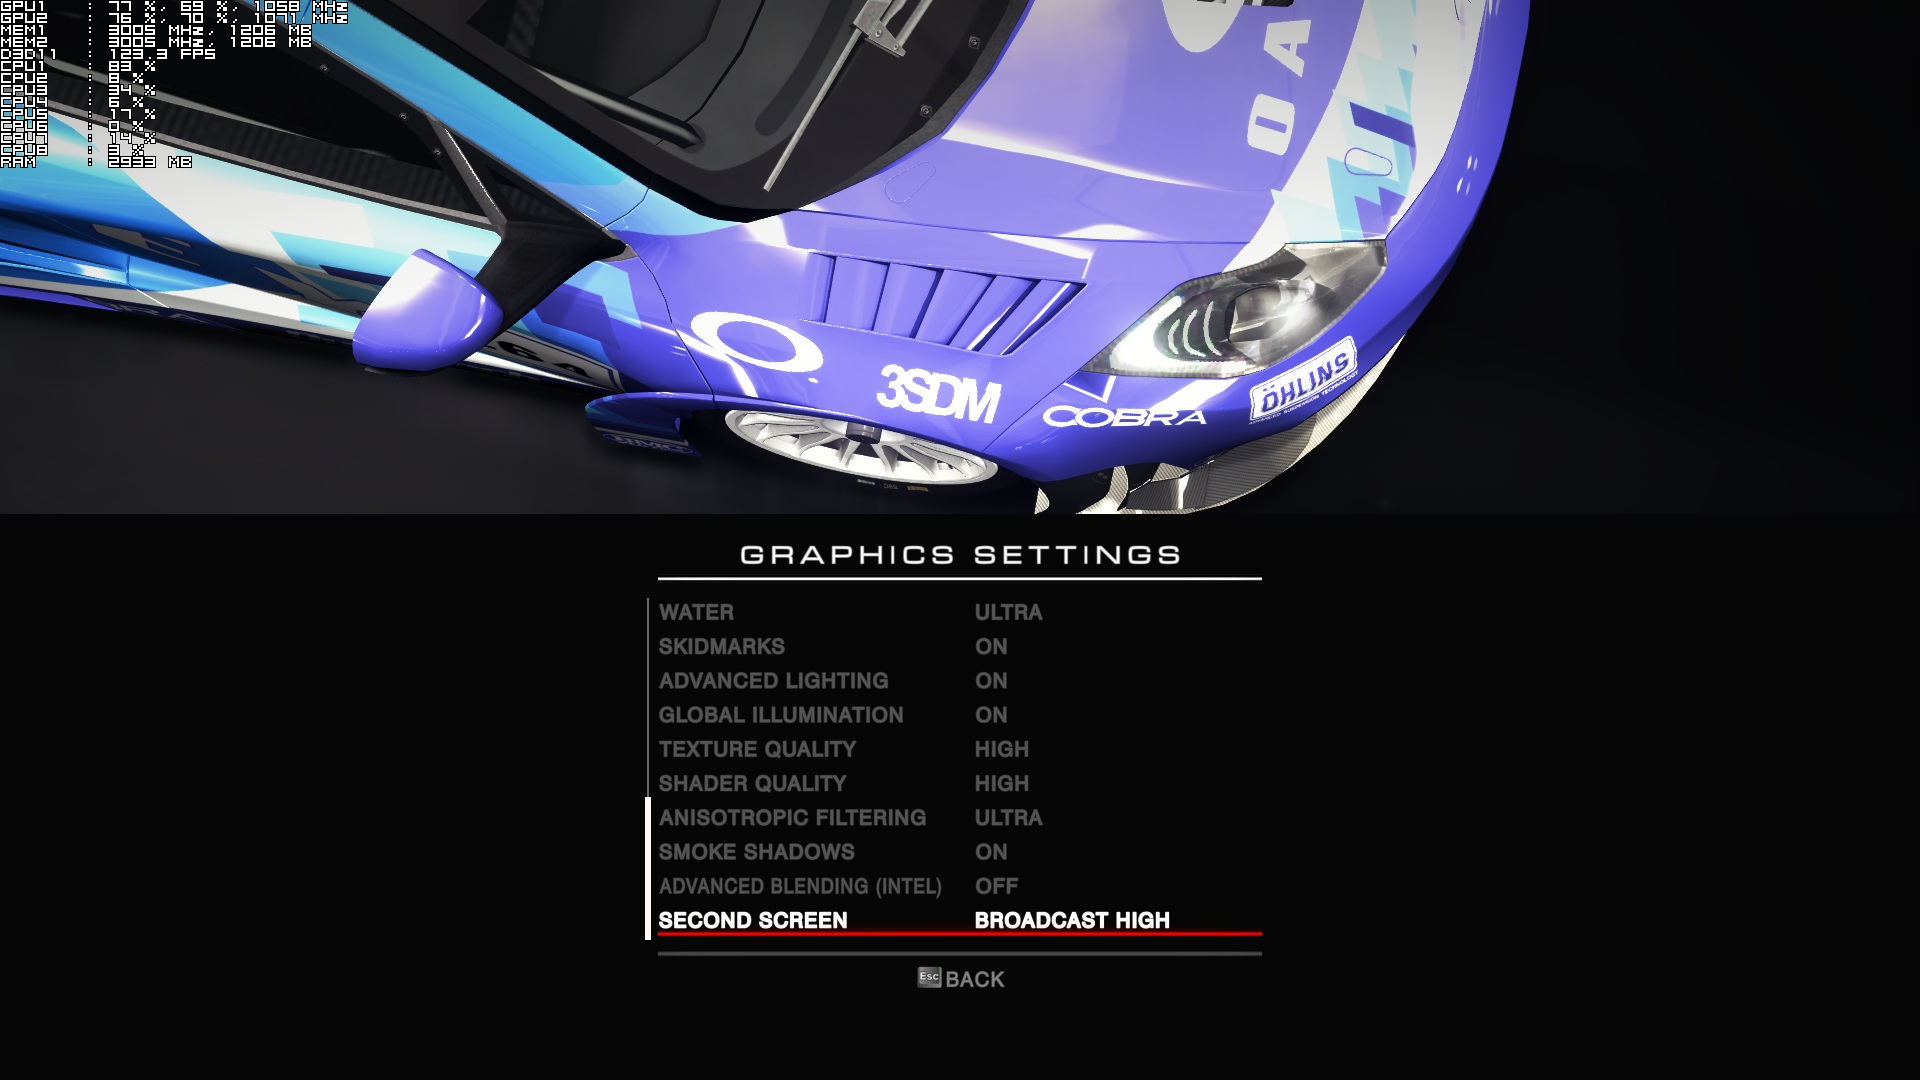 GRID: Autosport - PC Performance Analysis - DSOGaming